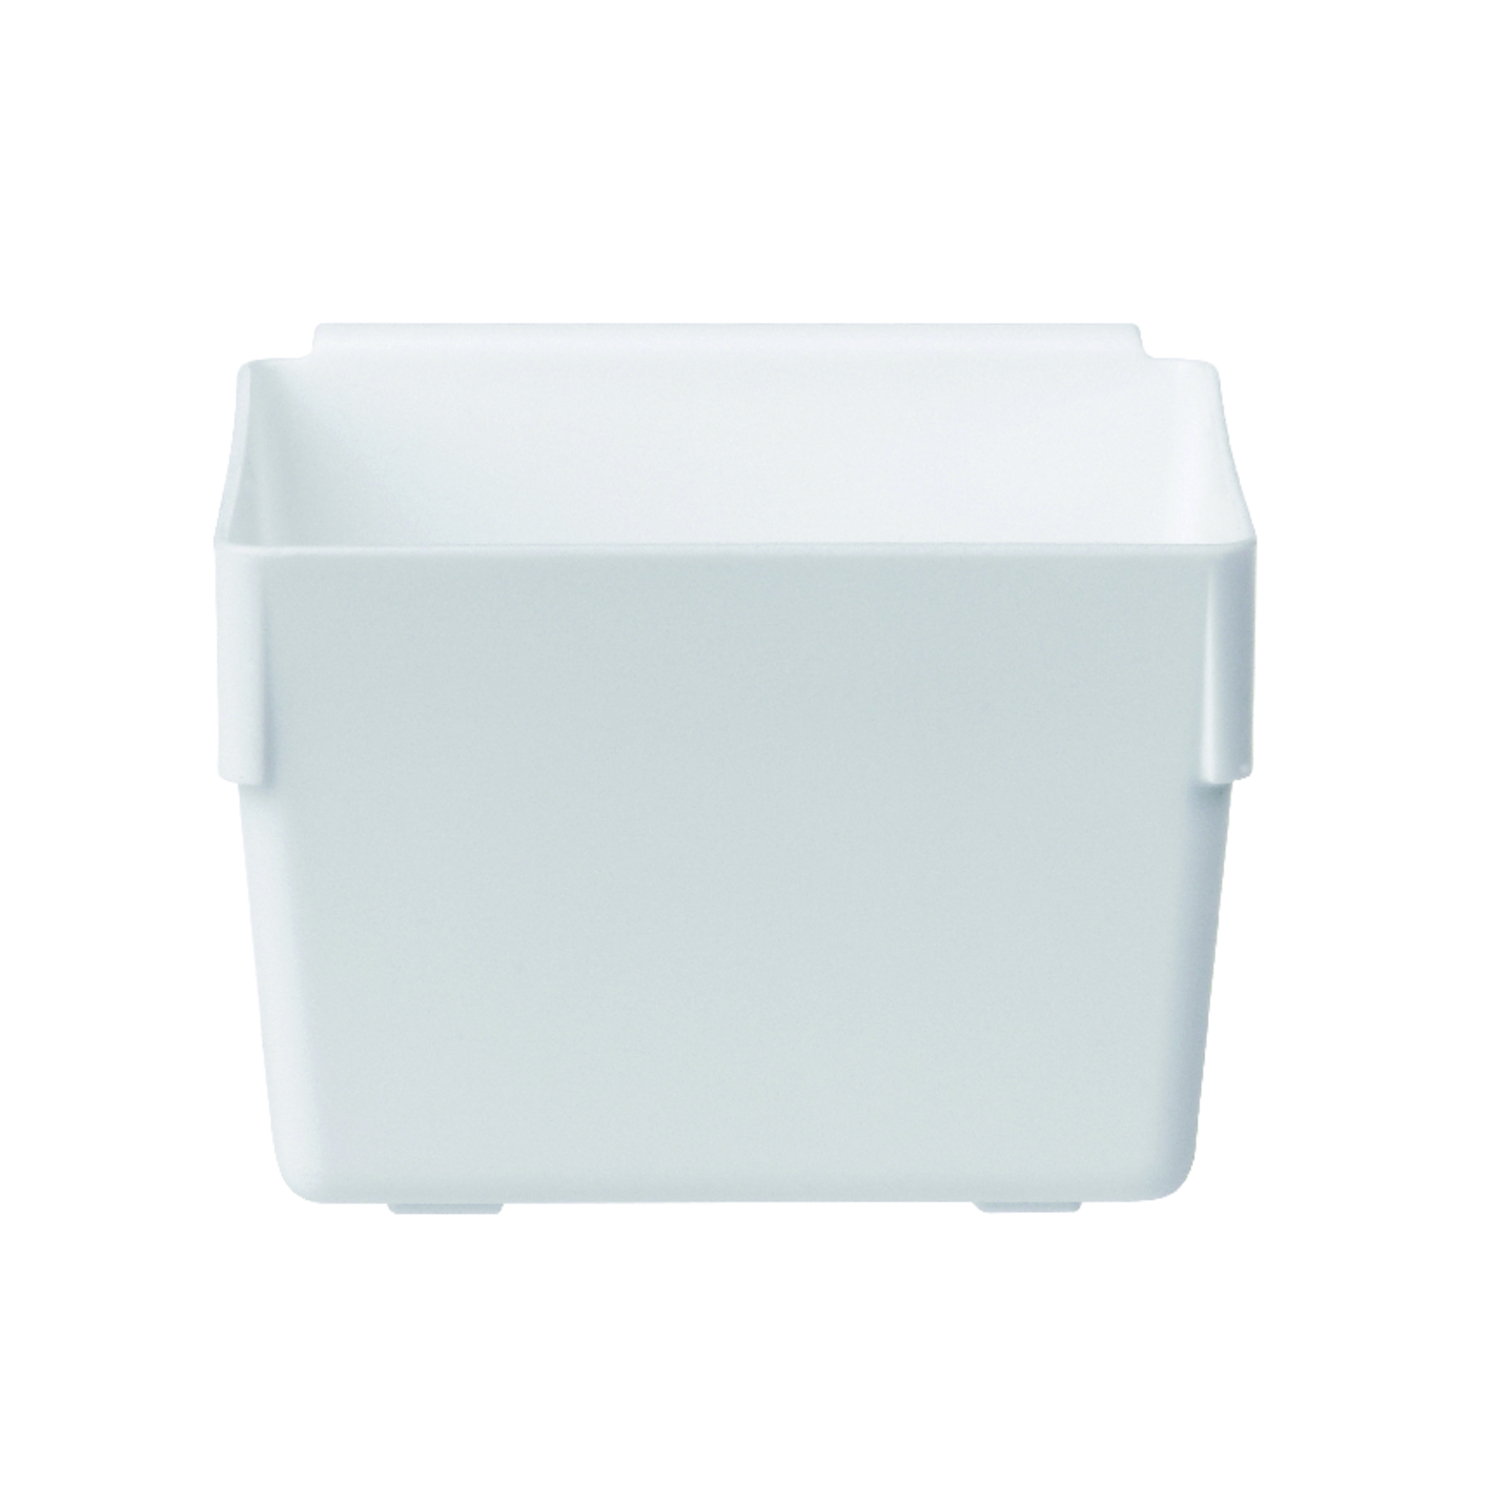 Rubbermaid  2 in. H x 3 in. L x 3 in. W White  Plastic  Drawer Organizer